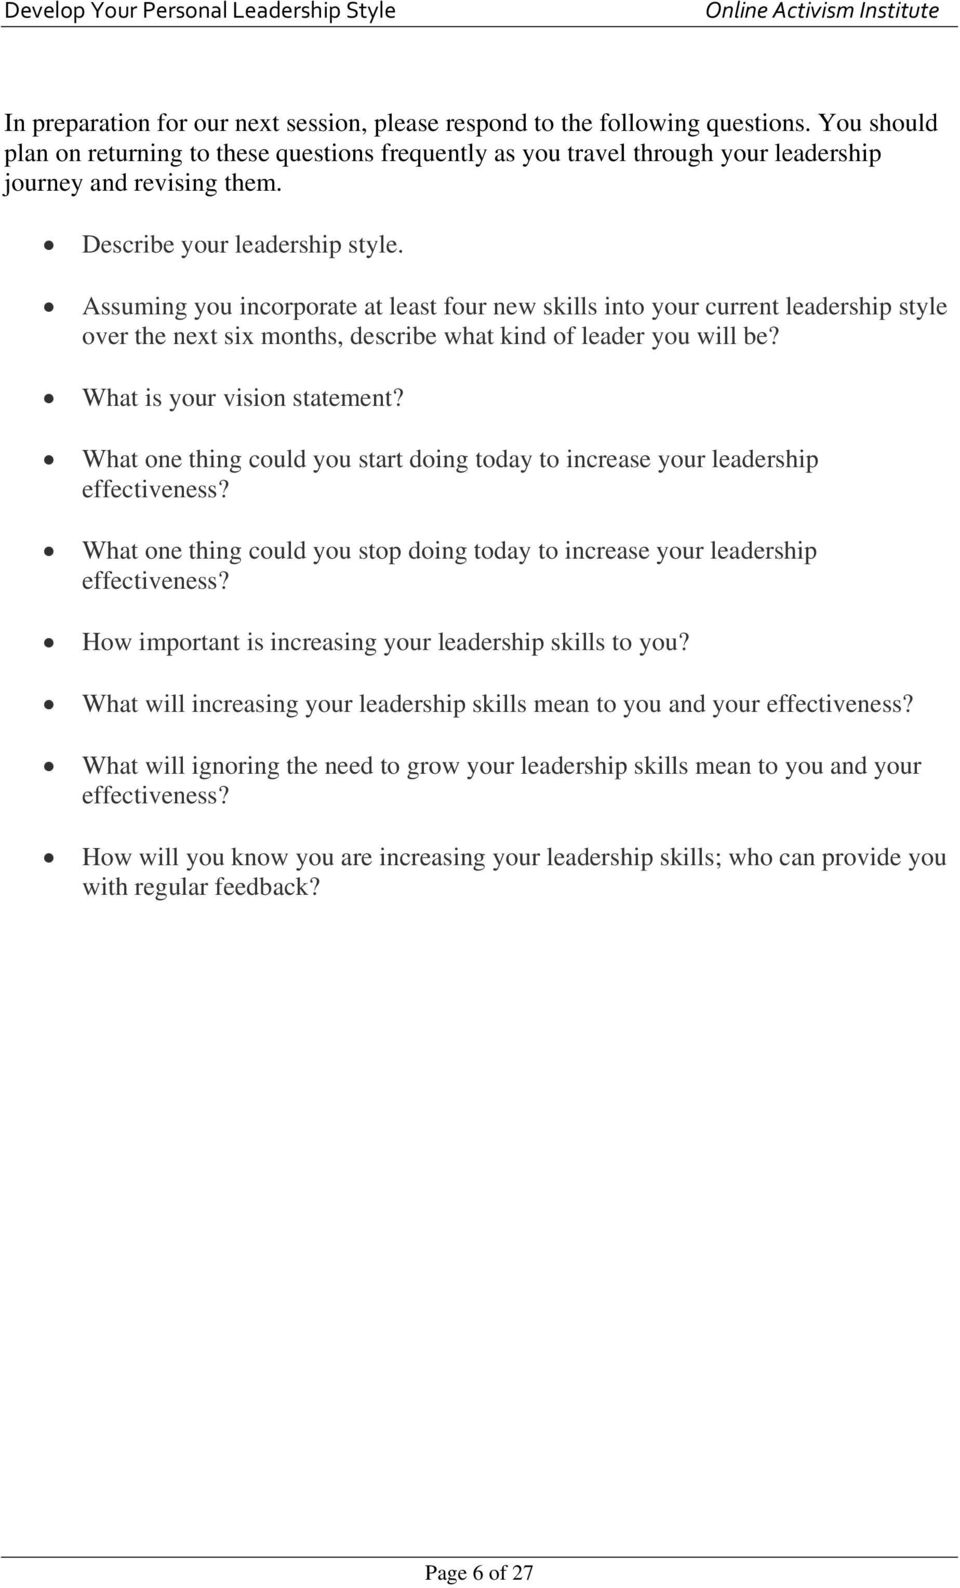 Assuming you incorporate at least four new skills into your current leadership style over the next six months, describe what kind of leader you will be? What is your vision statement?